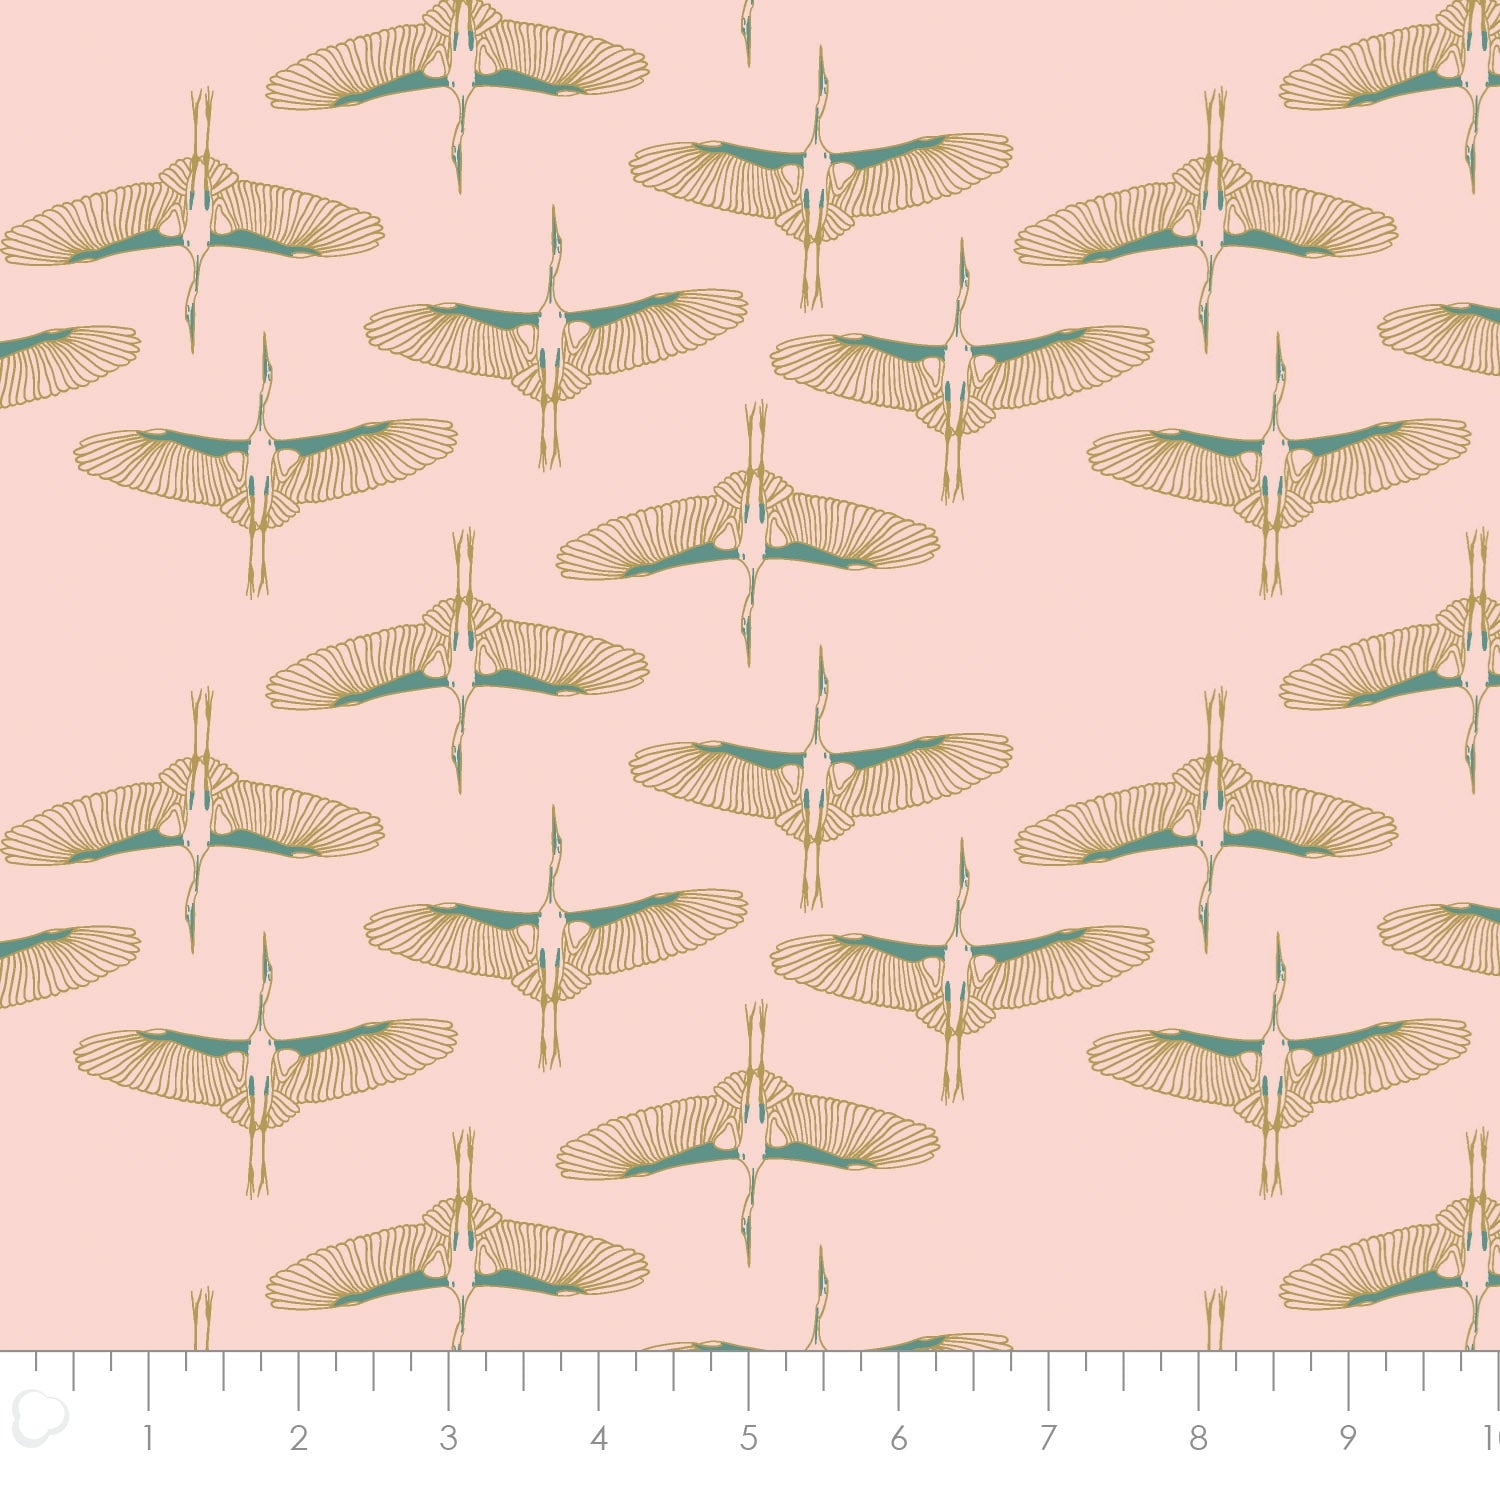 Mystic Cranes - Flying Cranes Fabric - Trapunto